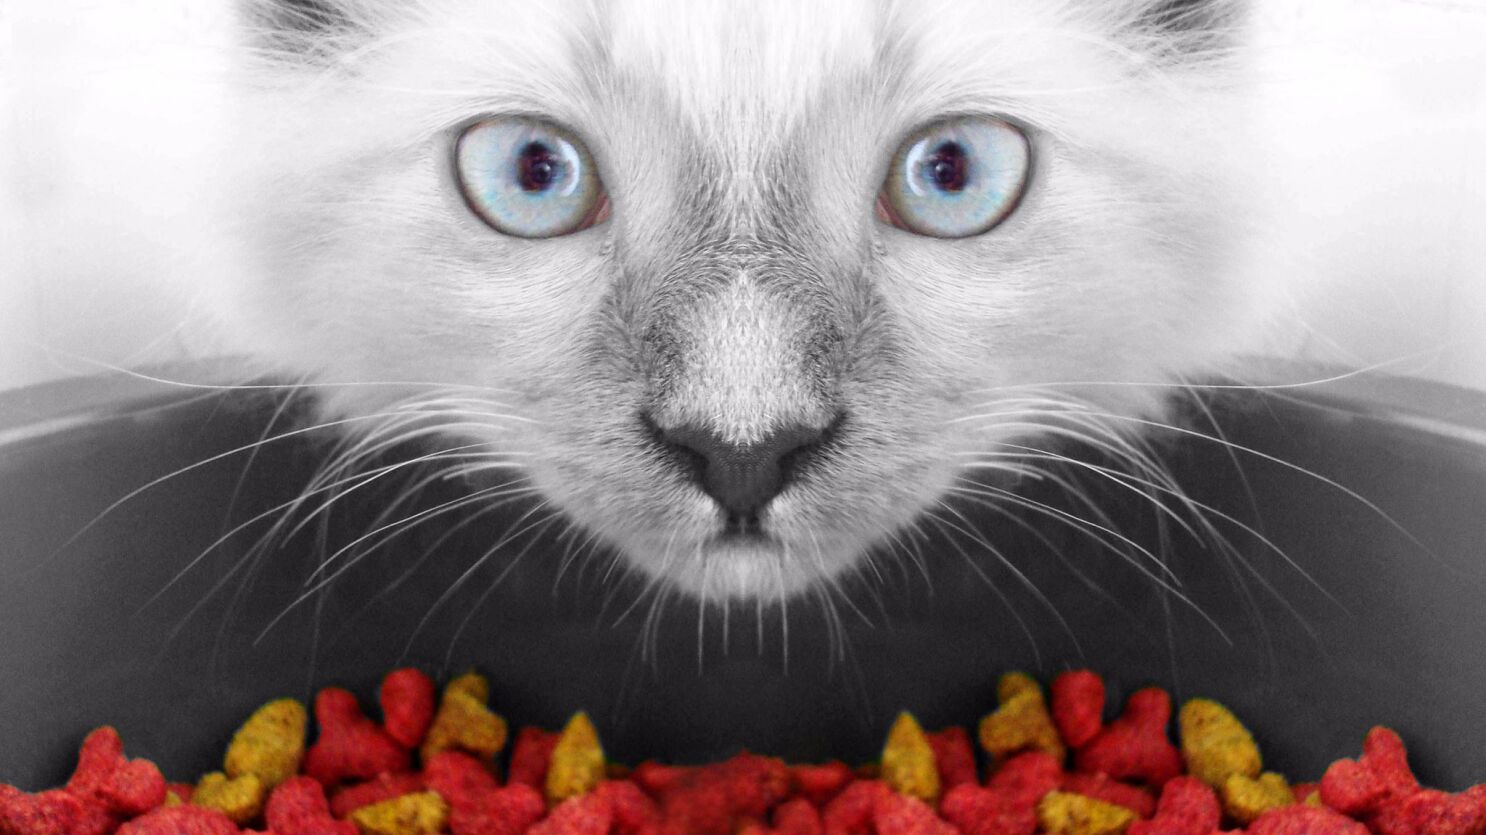 What do I need to know to make my own cat food? - Los